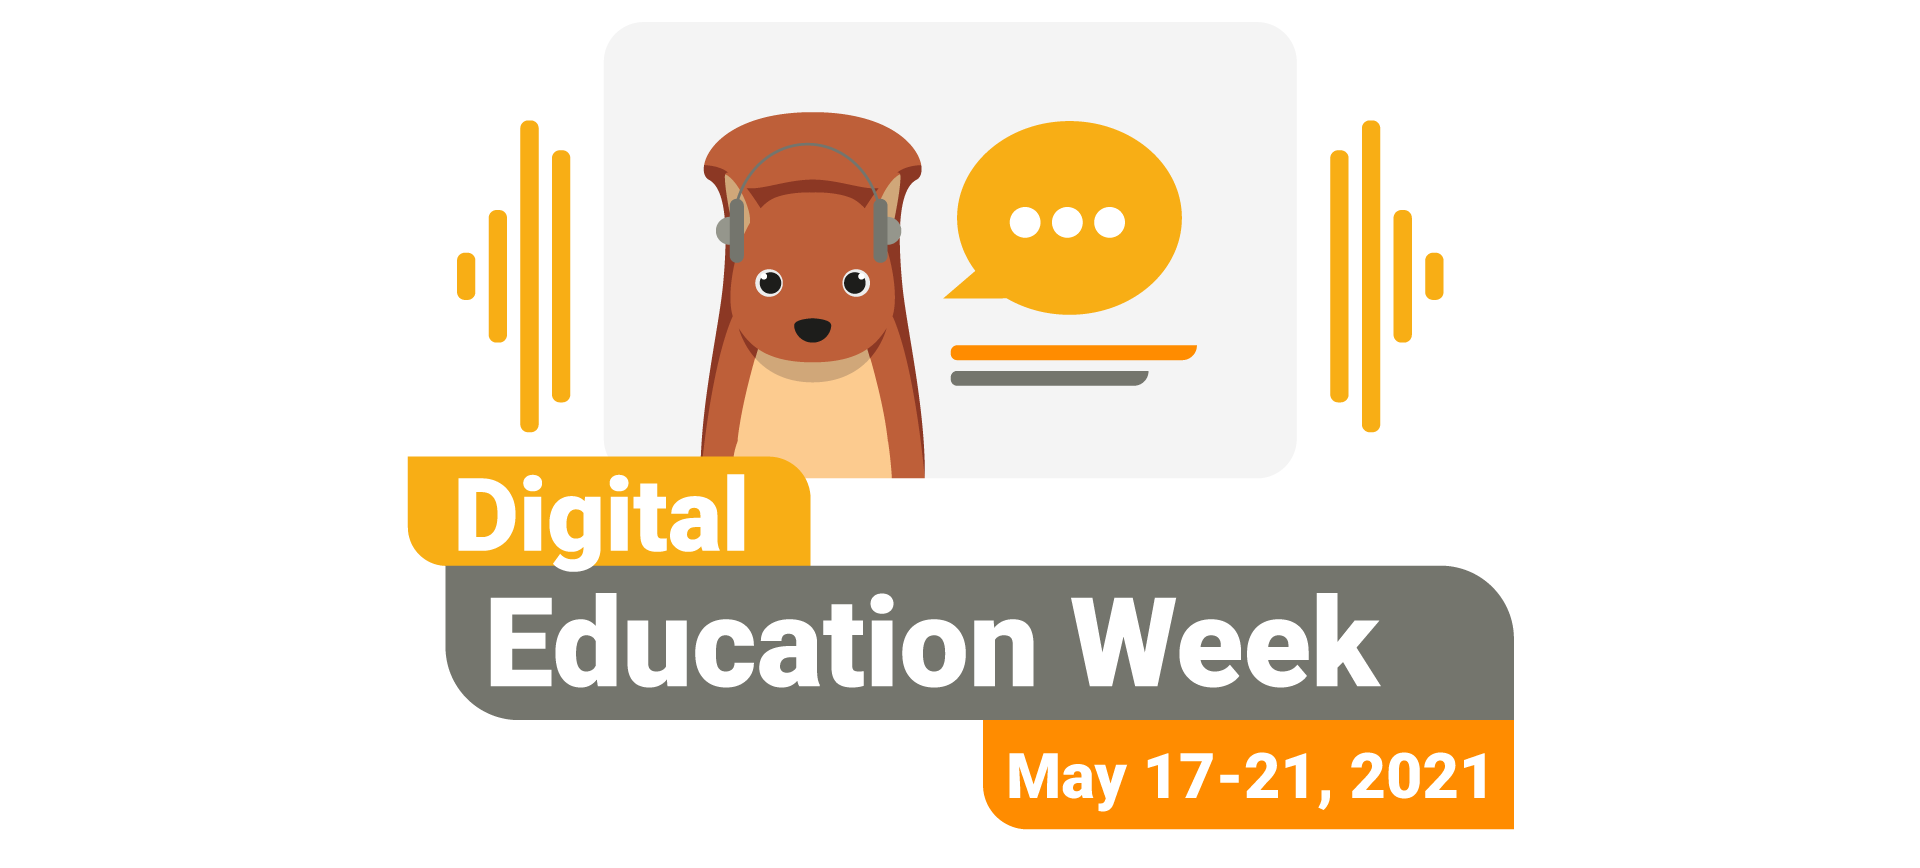 Digital Education Week